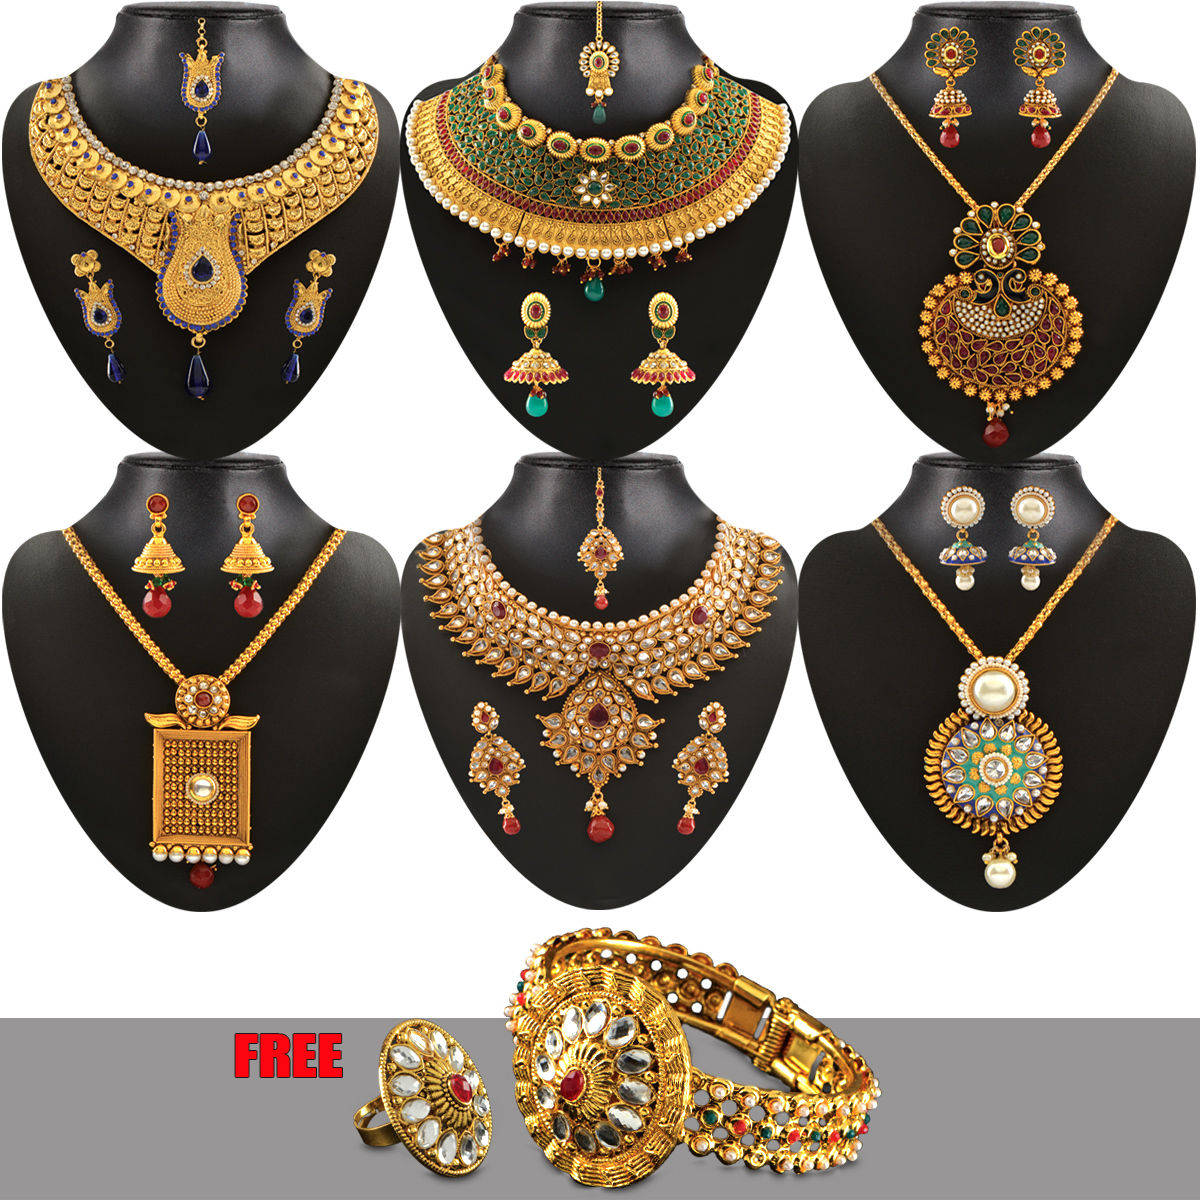 Bridal Collection Jewellery: Buy Jodha Heavy Bridal Jewellery Collection Online At Best